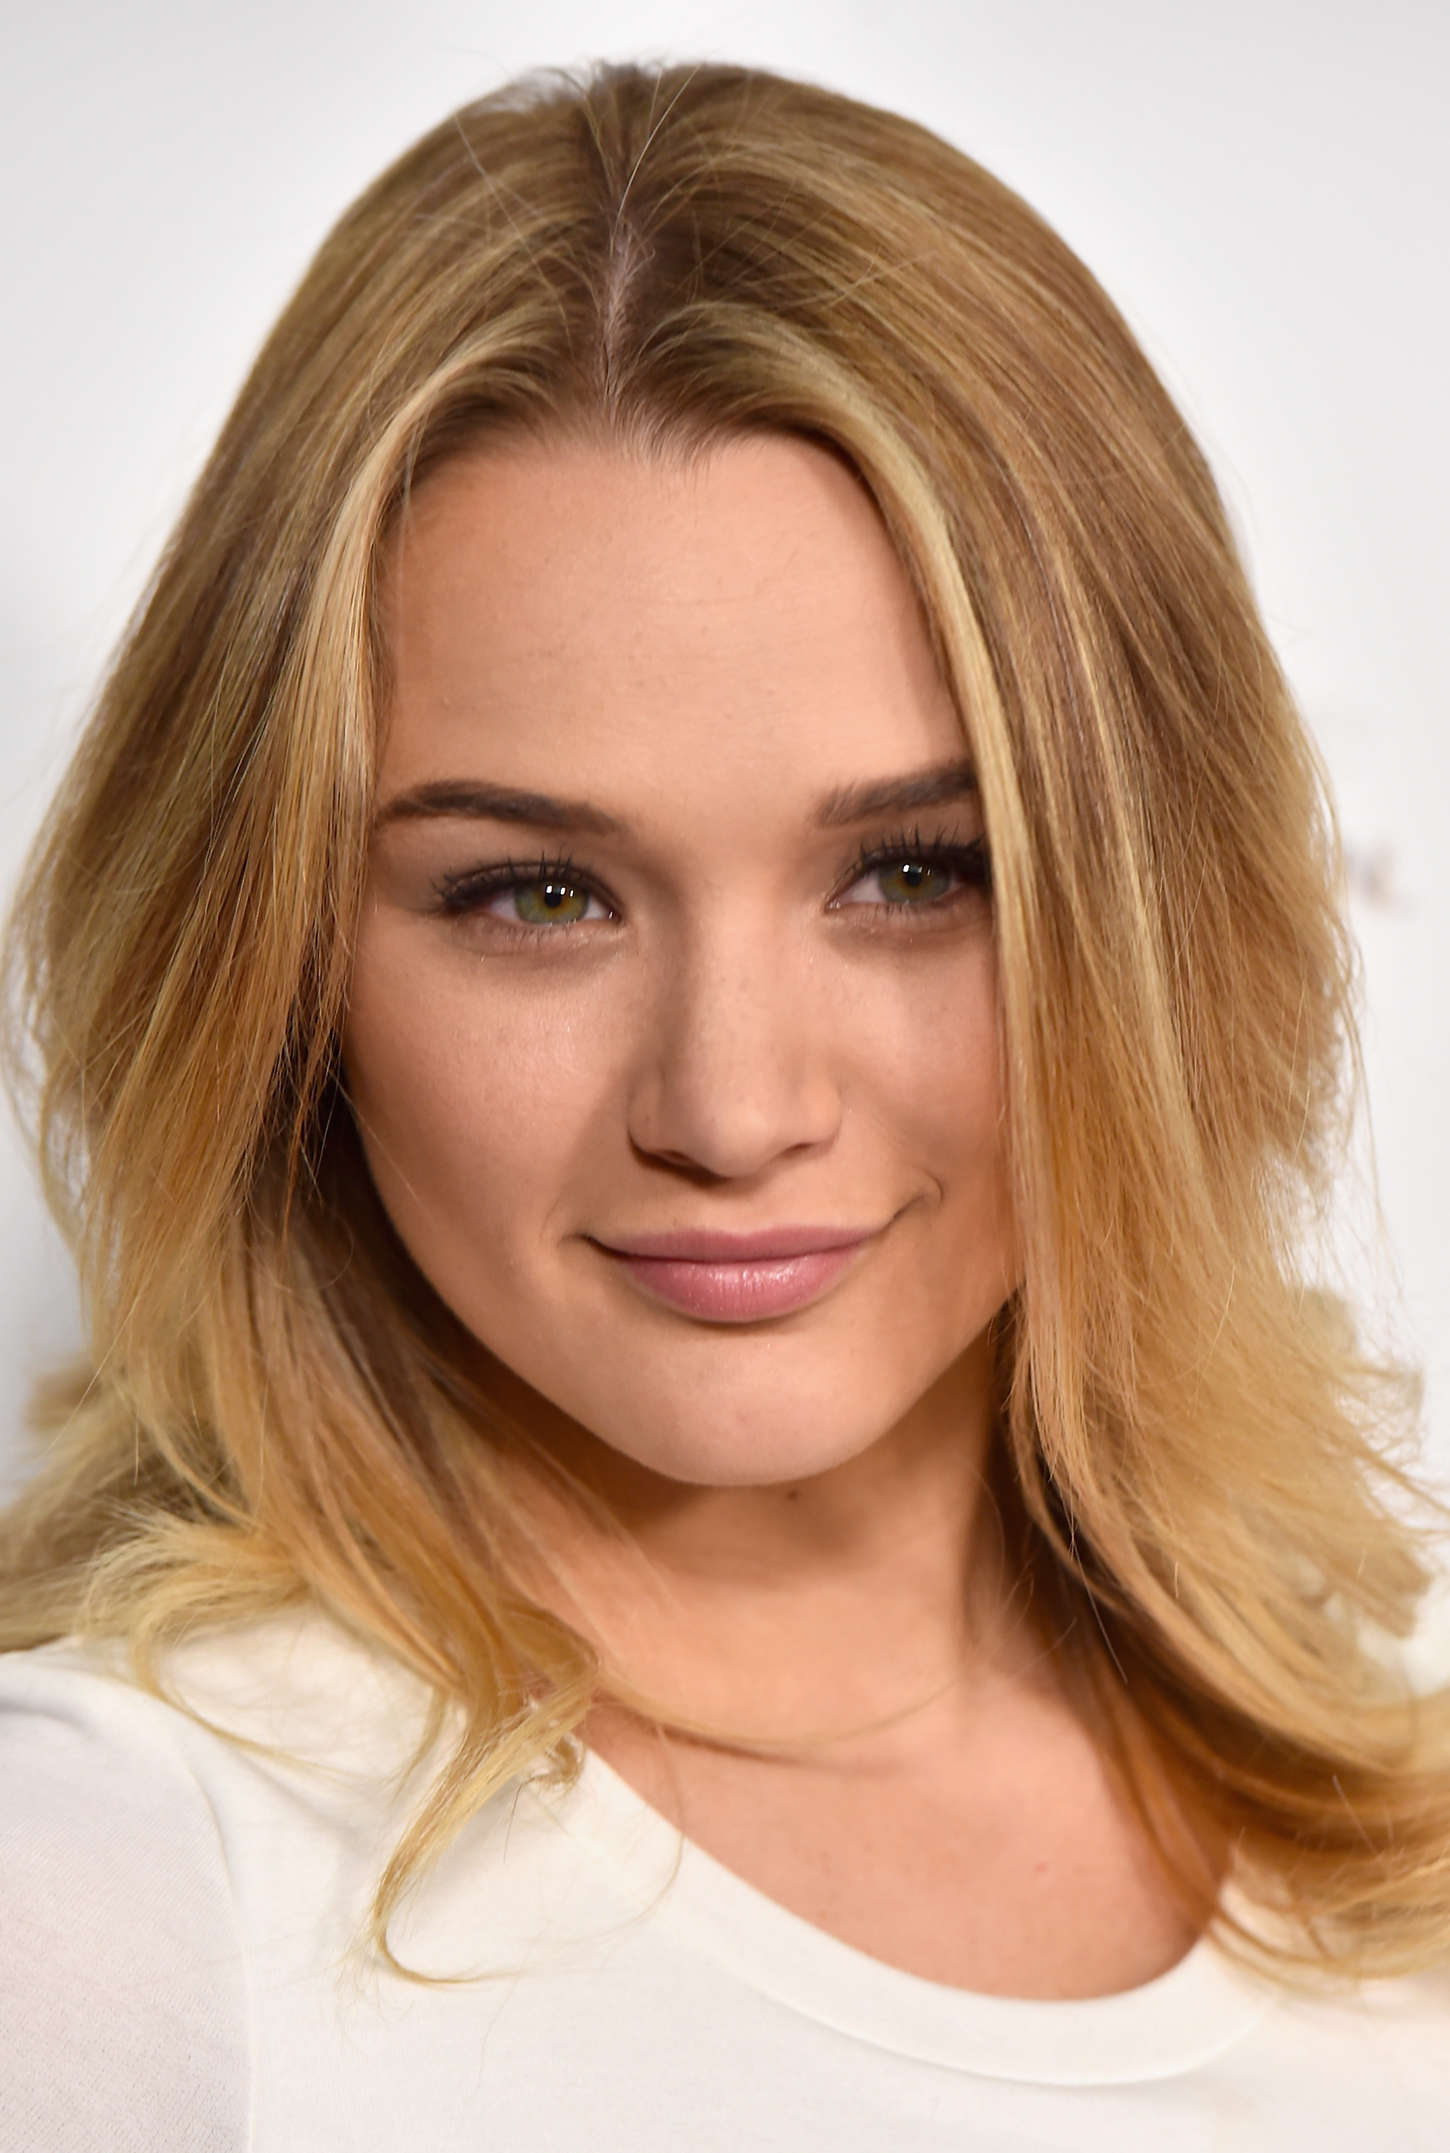 Hunter Haley King ATAS Cocktail Reception Celebrating the Daytime Peer Group in Beverly Hills